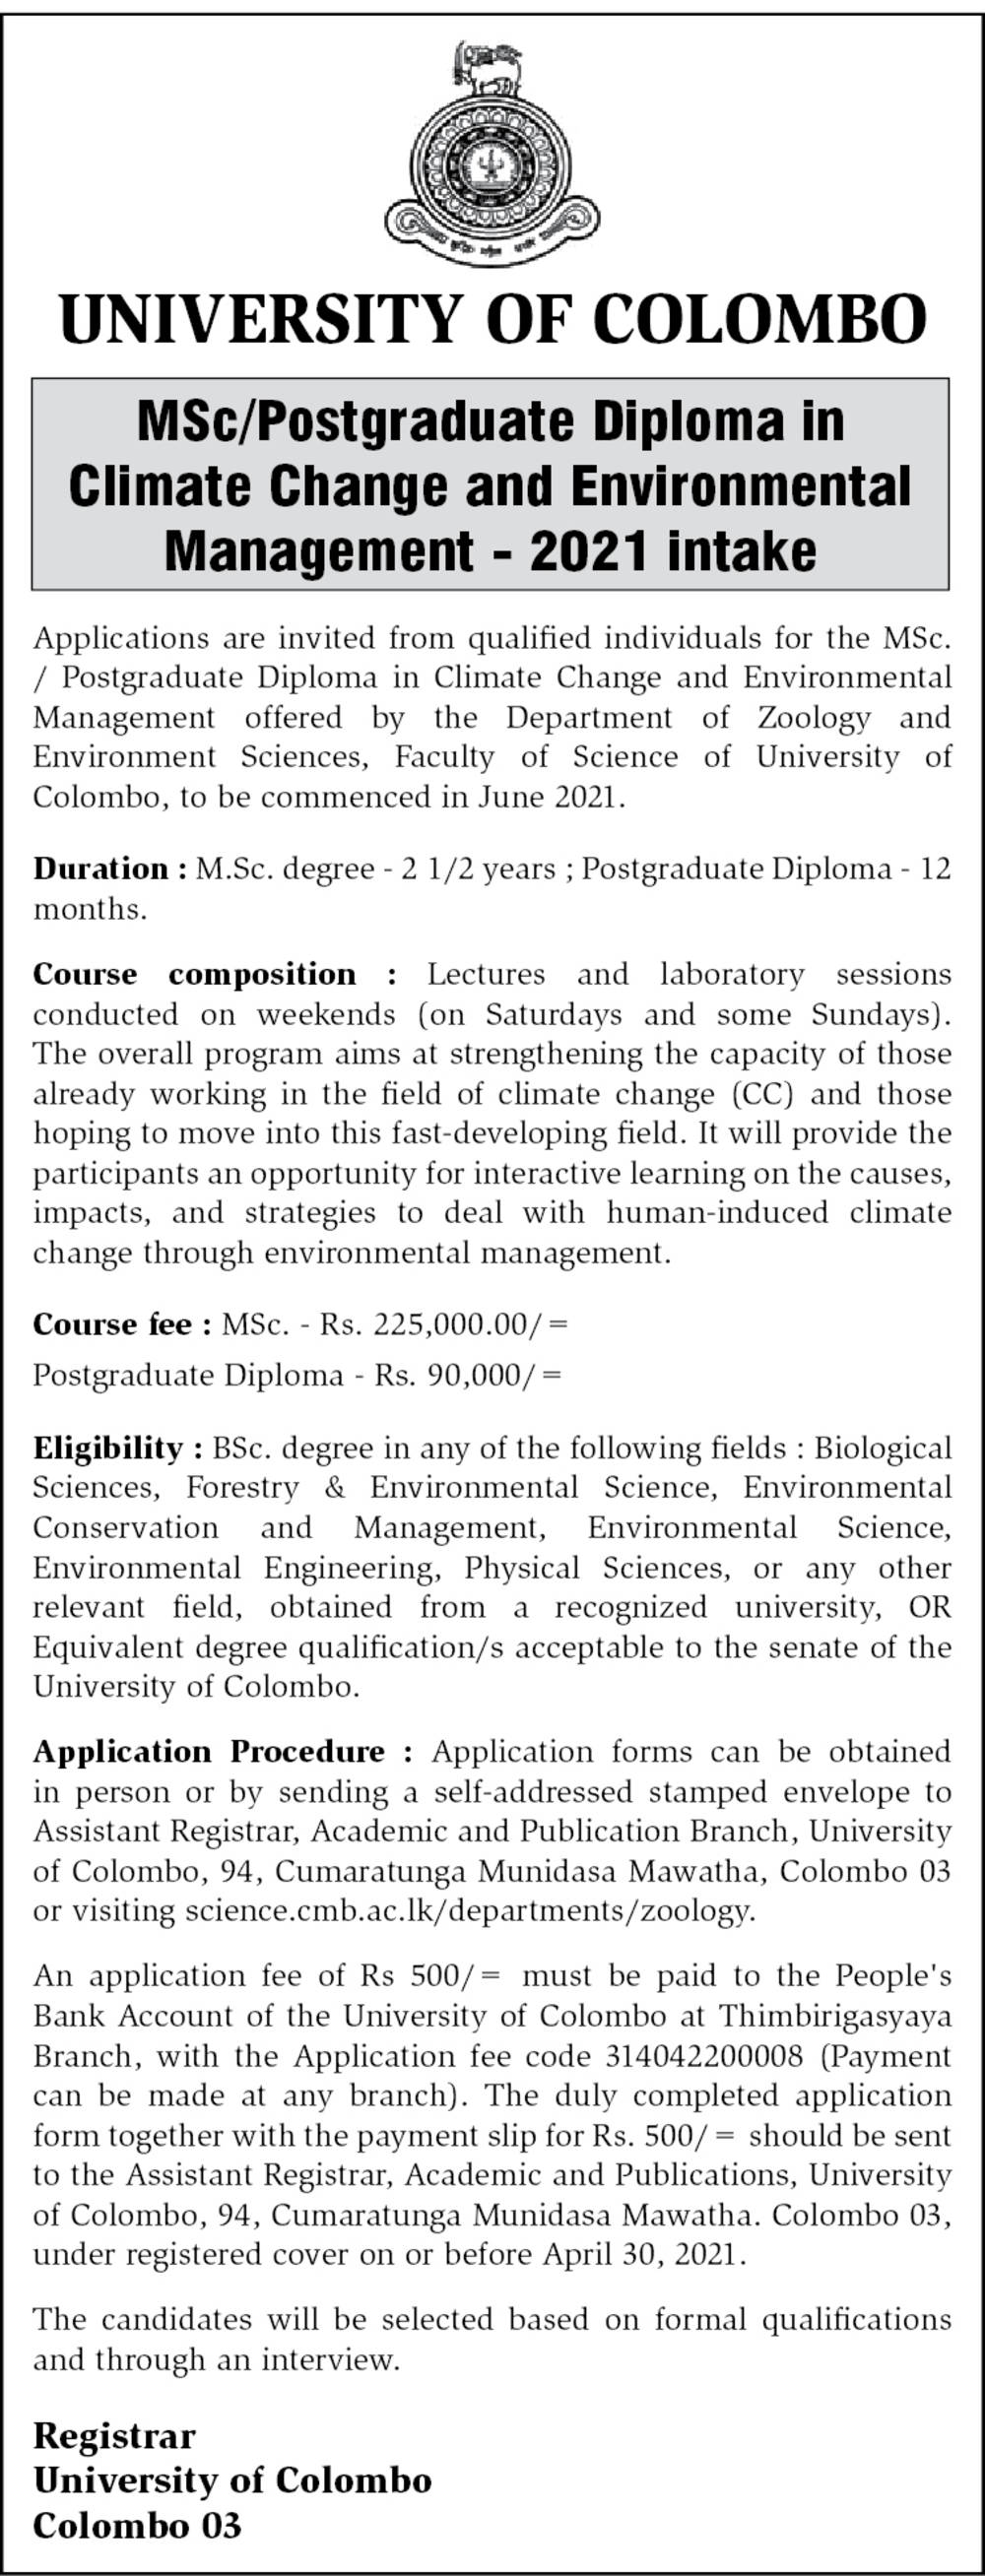 MSc/Postgraduate Diploma in Climate Change & Environmental Management ( 2021) - University of Colombo